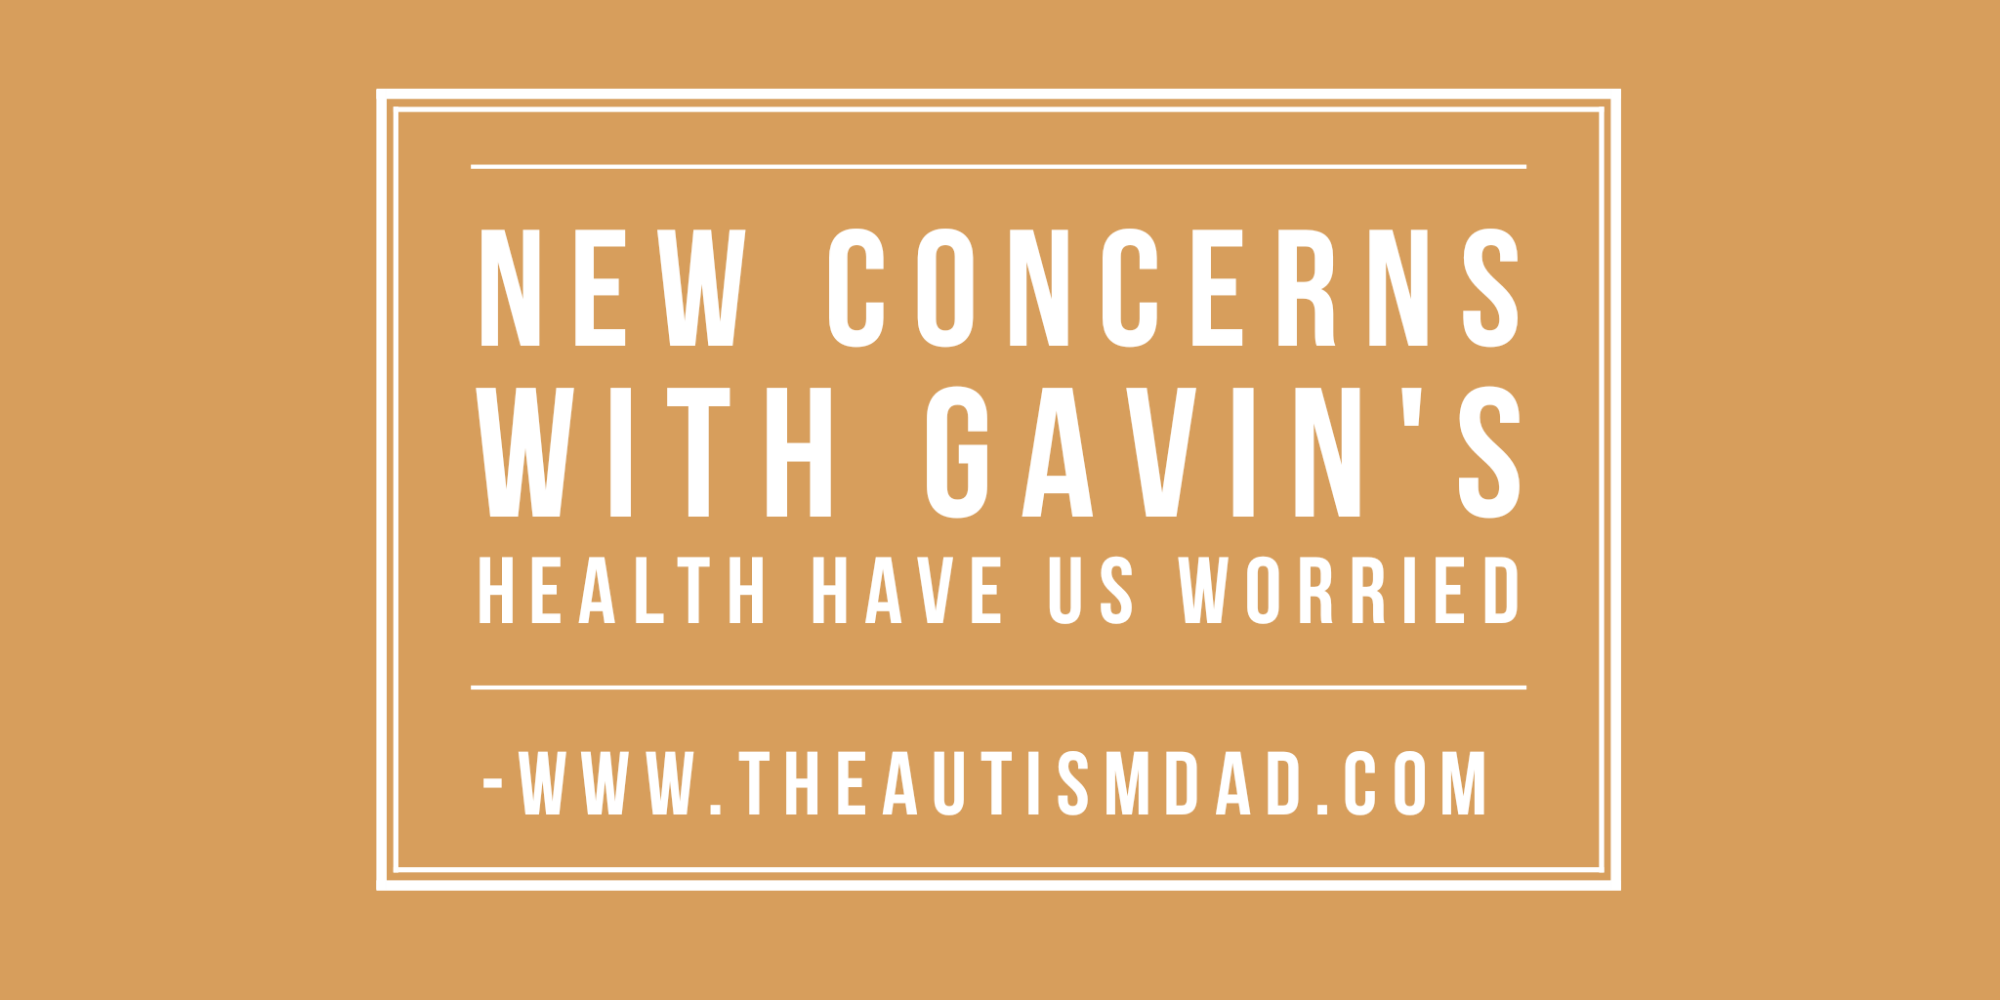 New concerns with Gavin's health have us worried